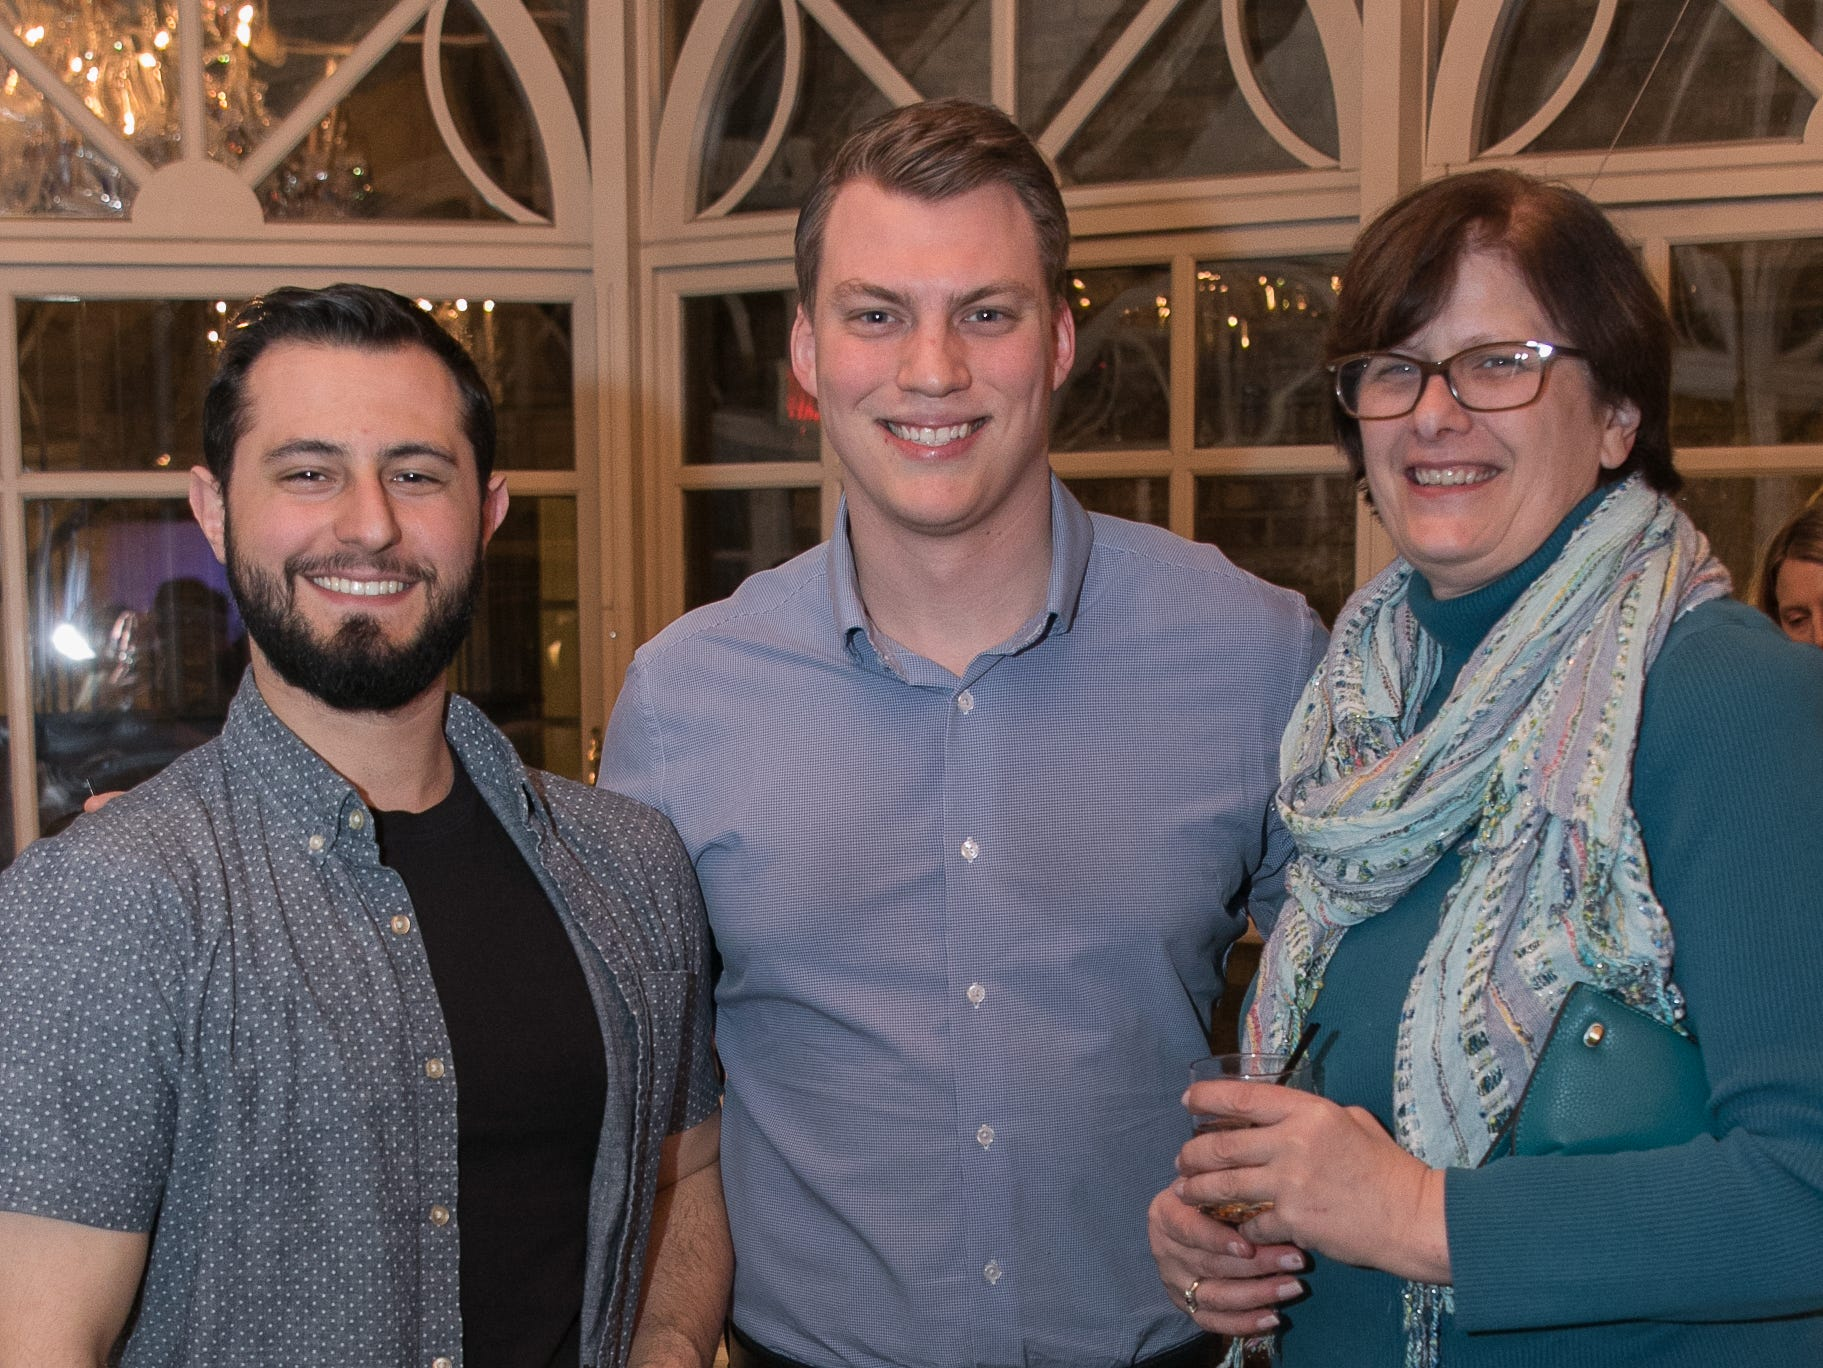 PJ Bellardino, Noah Busker, Barbara VanHassel. Rebuilding Together North Jersey held its third annual Beefsteak Dinner with former NY Giants Howard Cross, Amani Toomer, and Sam Garnes at the Brownstone in Paterson. 03/07/2019